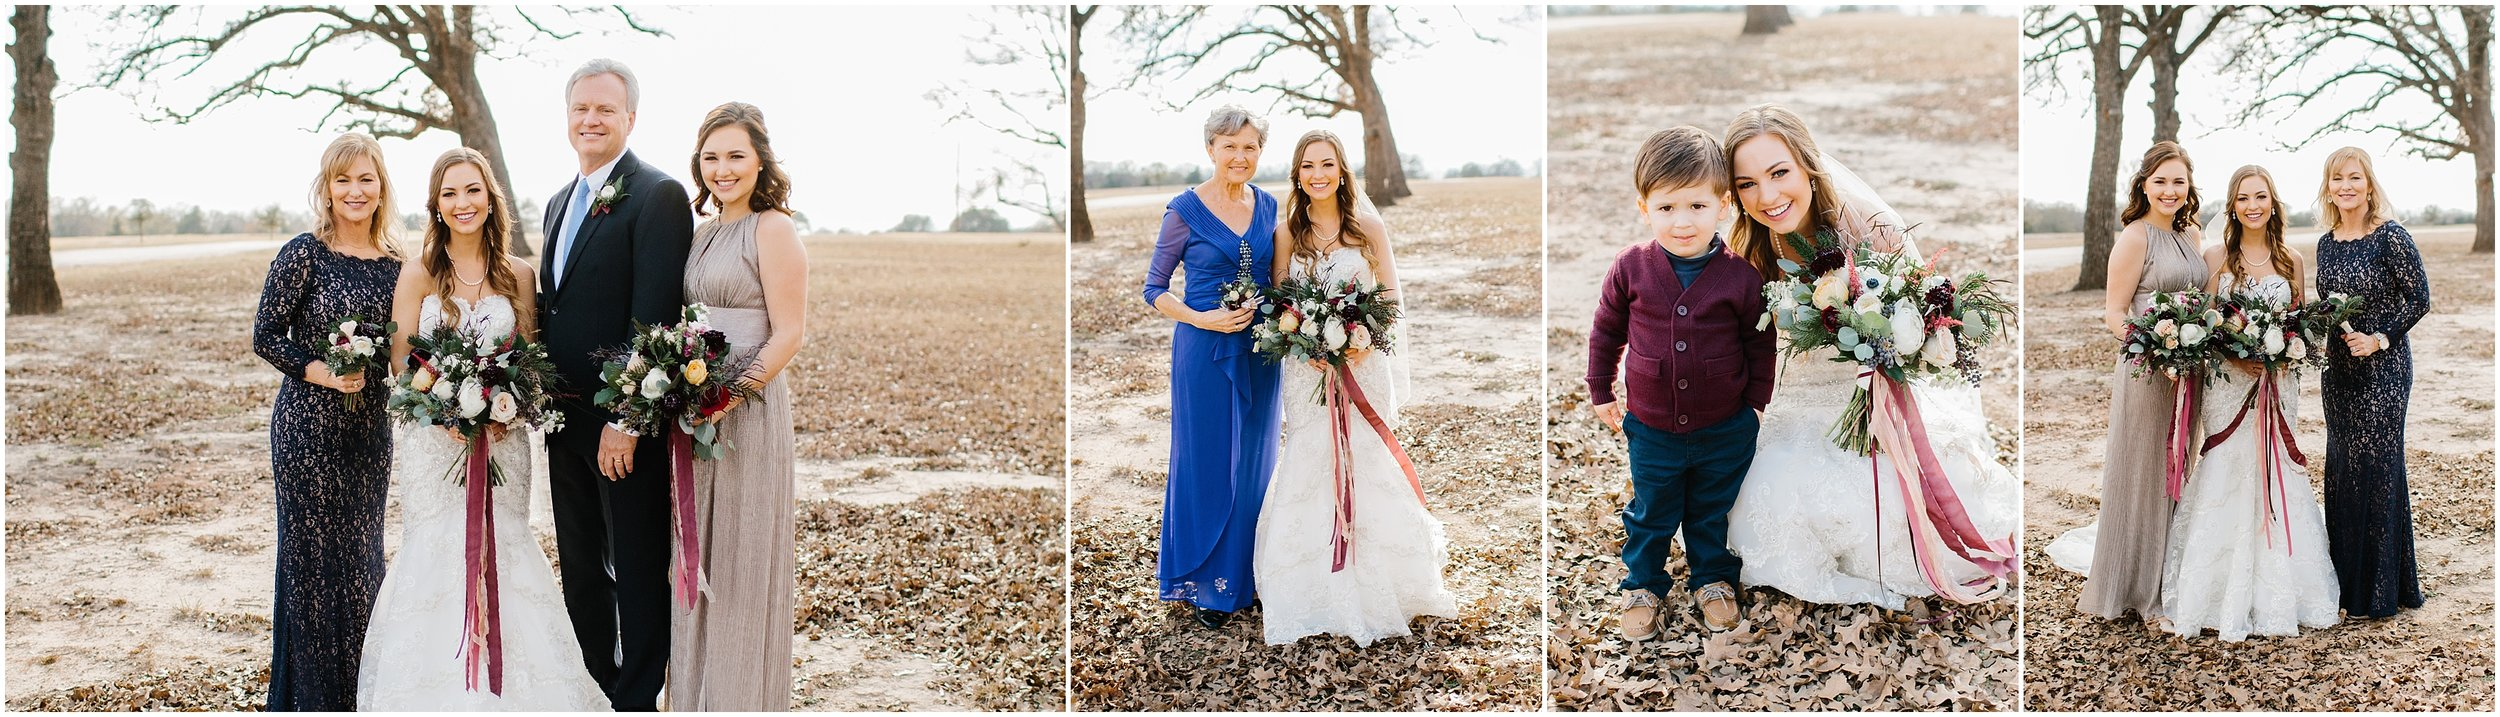 College station wedding photographer_0251.jpg